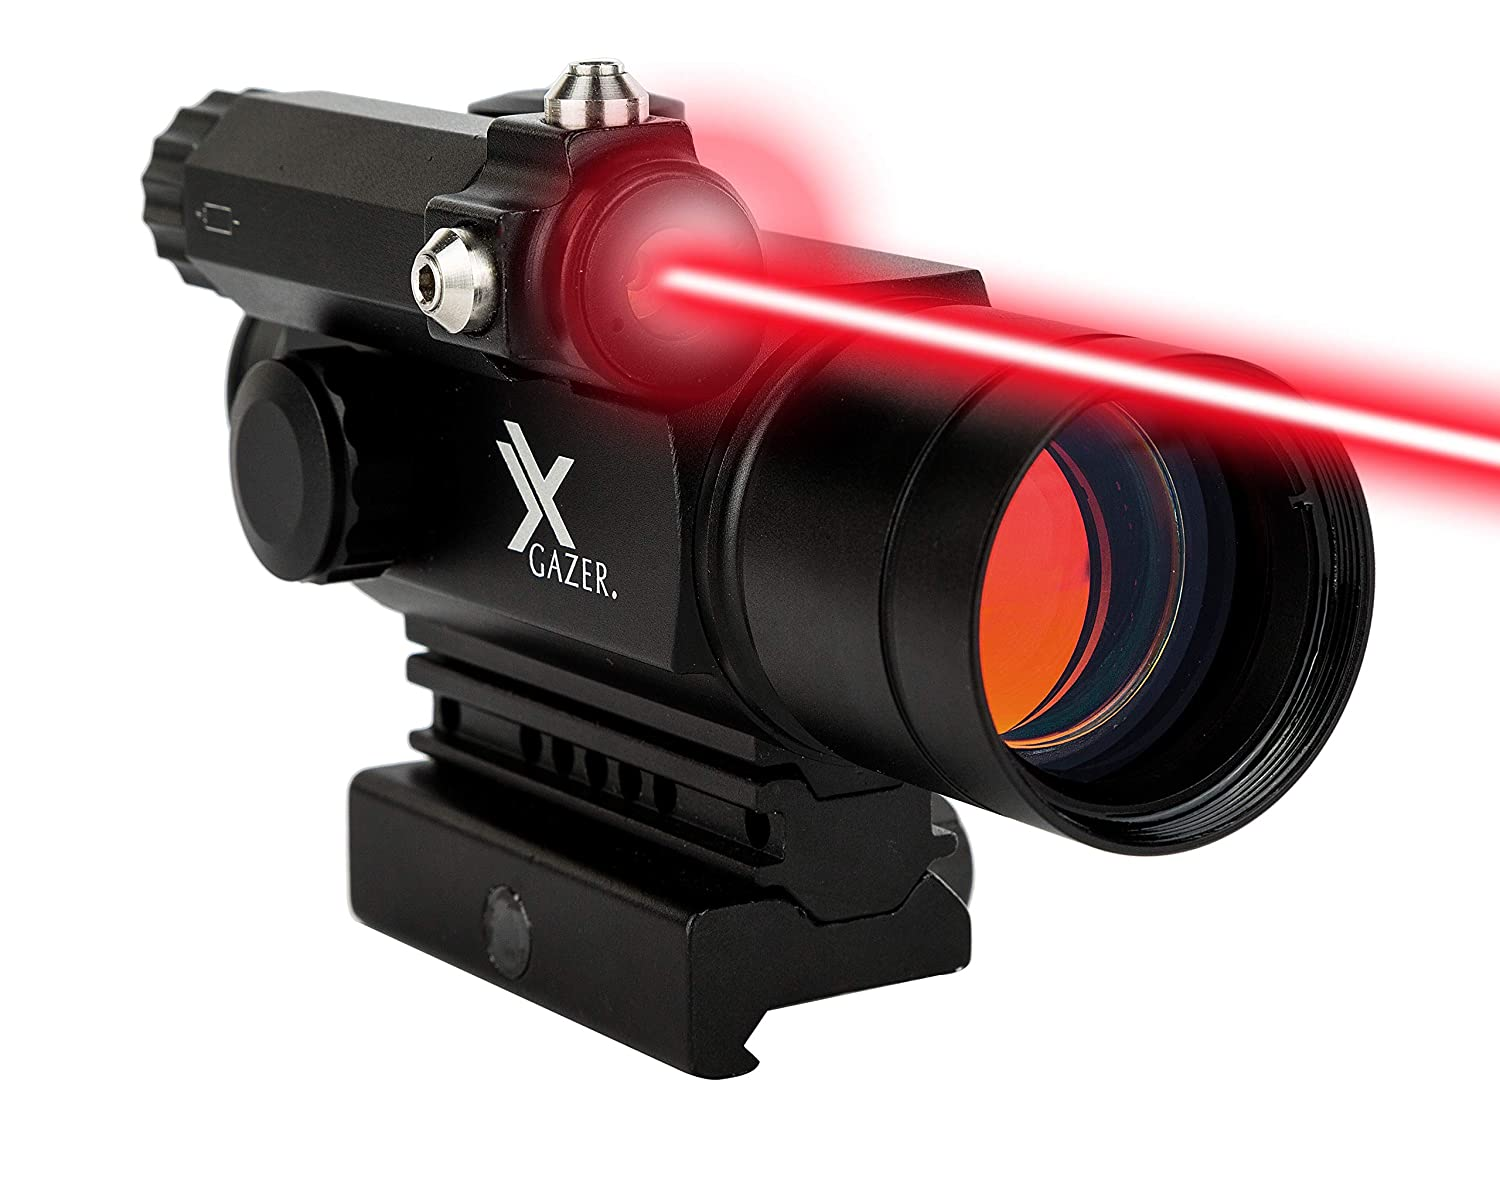 Xgazer Optics Point View Red Dot Sight with Laser 2 MOA Dot Laser Sight Fully Multy-Coated Lens Shockproof, Fog Proof, and Waterproof